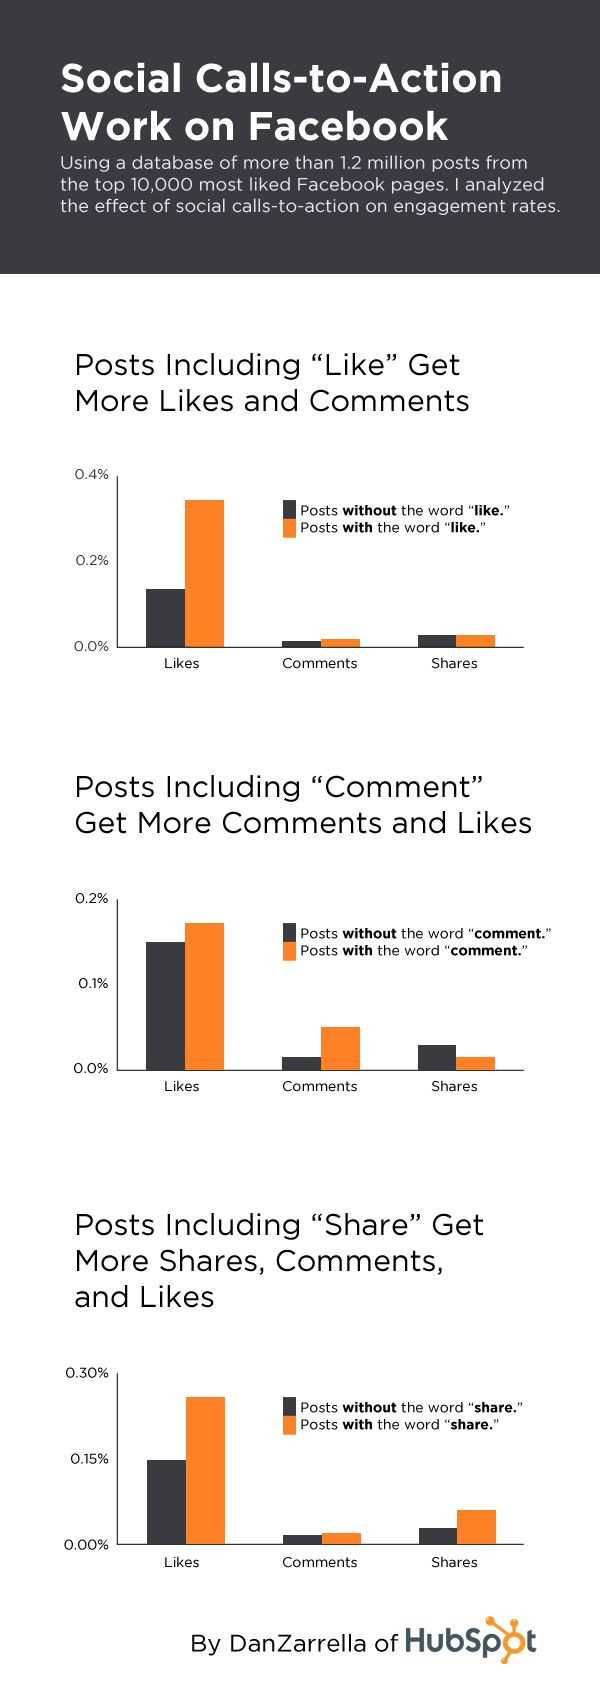 New Facebook Data: Social CTAs Lead to More Comments, Likes & Shares [#INFOGRAPHIC]